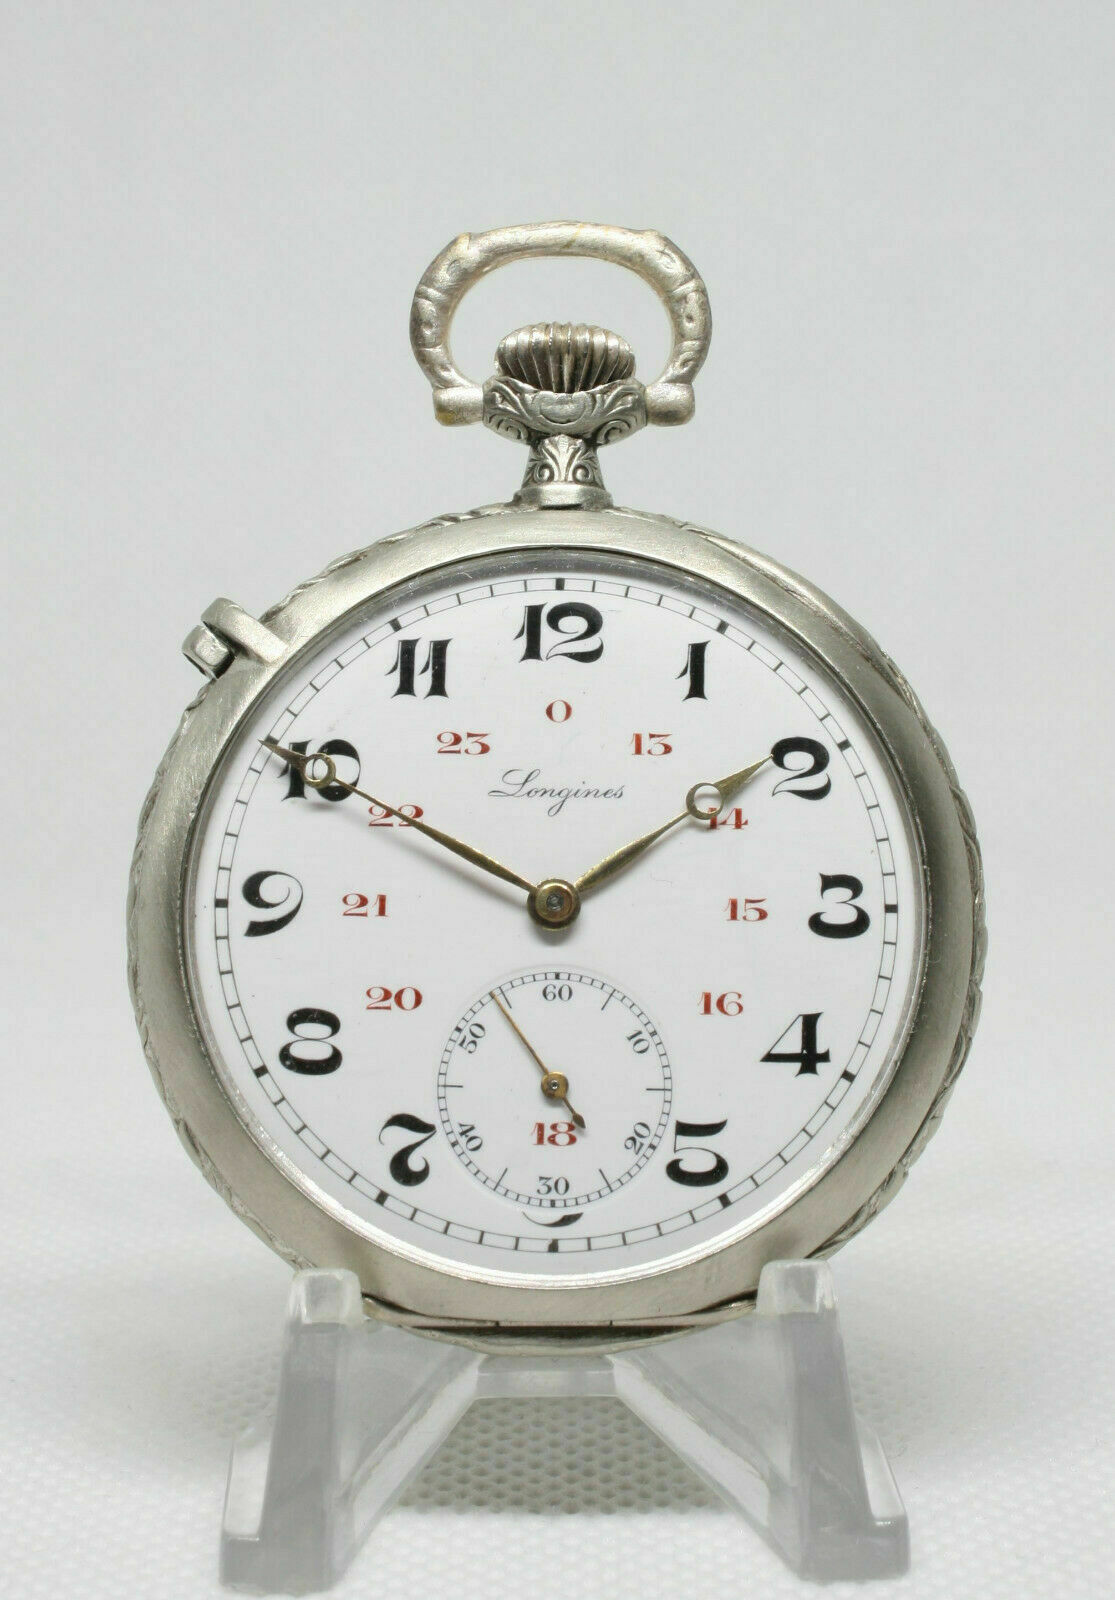 Longines cal.18.69N Military Awarded Pocket Watch Good Beautiful Condition - $600.00